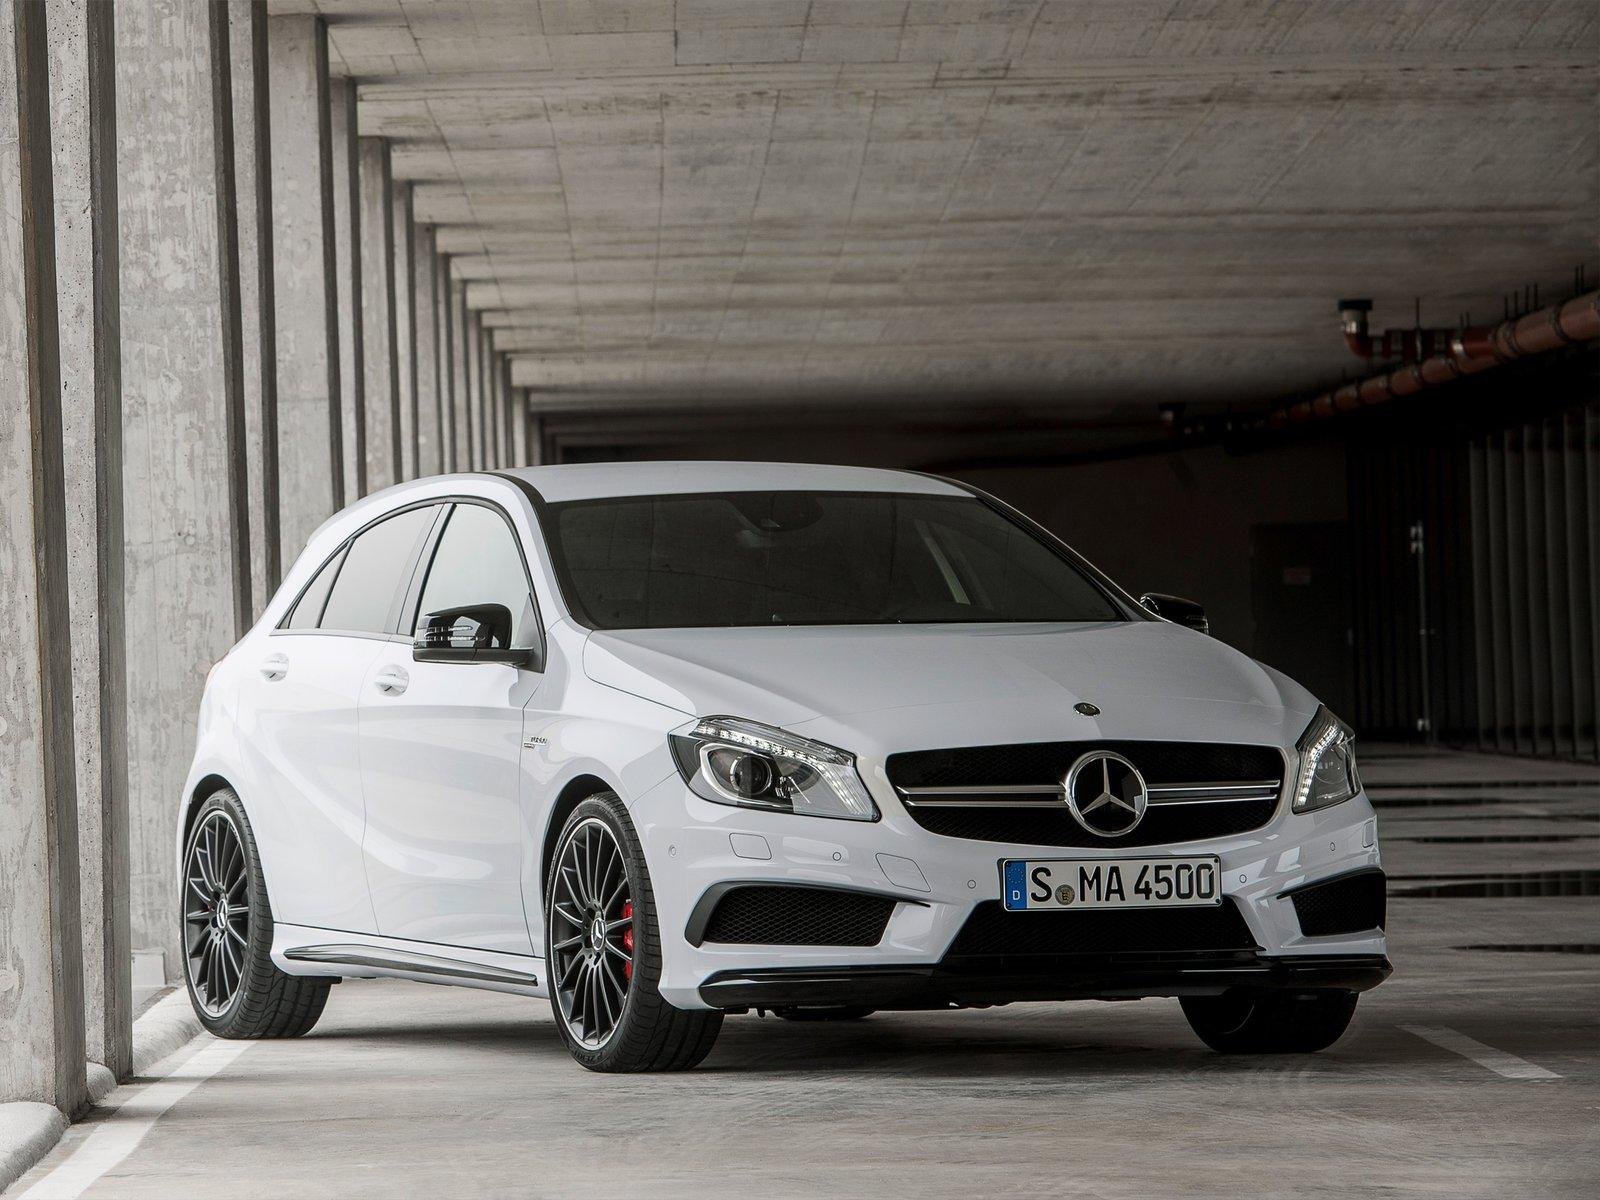 mercedes benz a45 amg unveiled ahead of geneva motor show. Black Bedroom Furniture Sets. Home Design Ideas